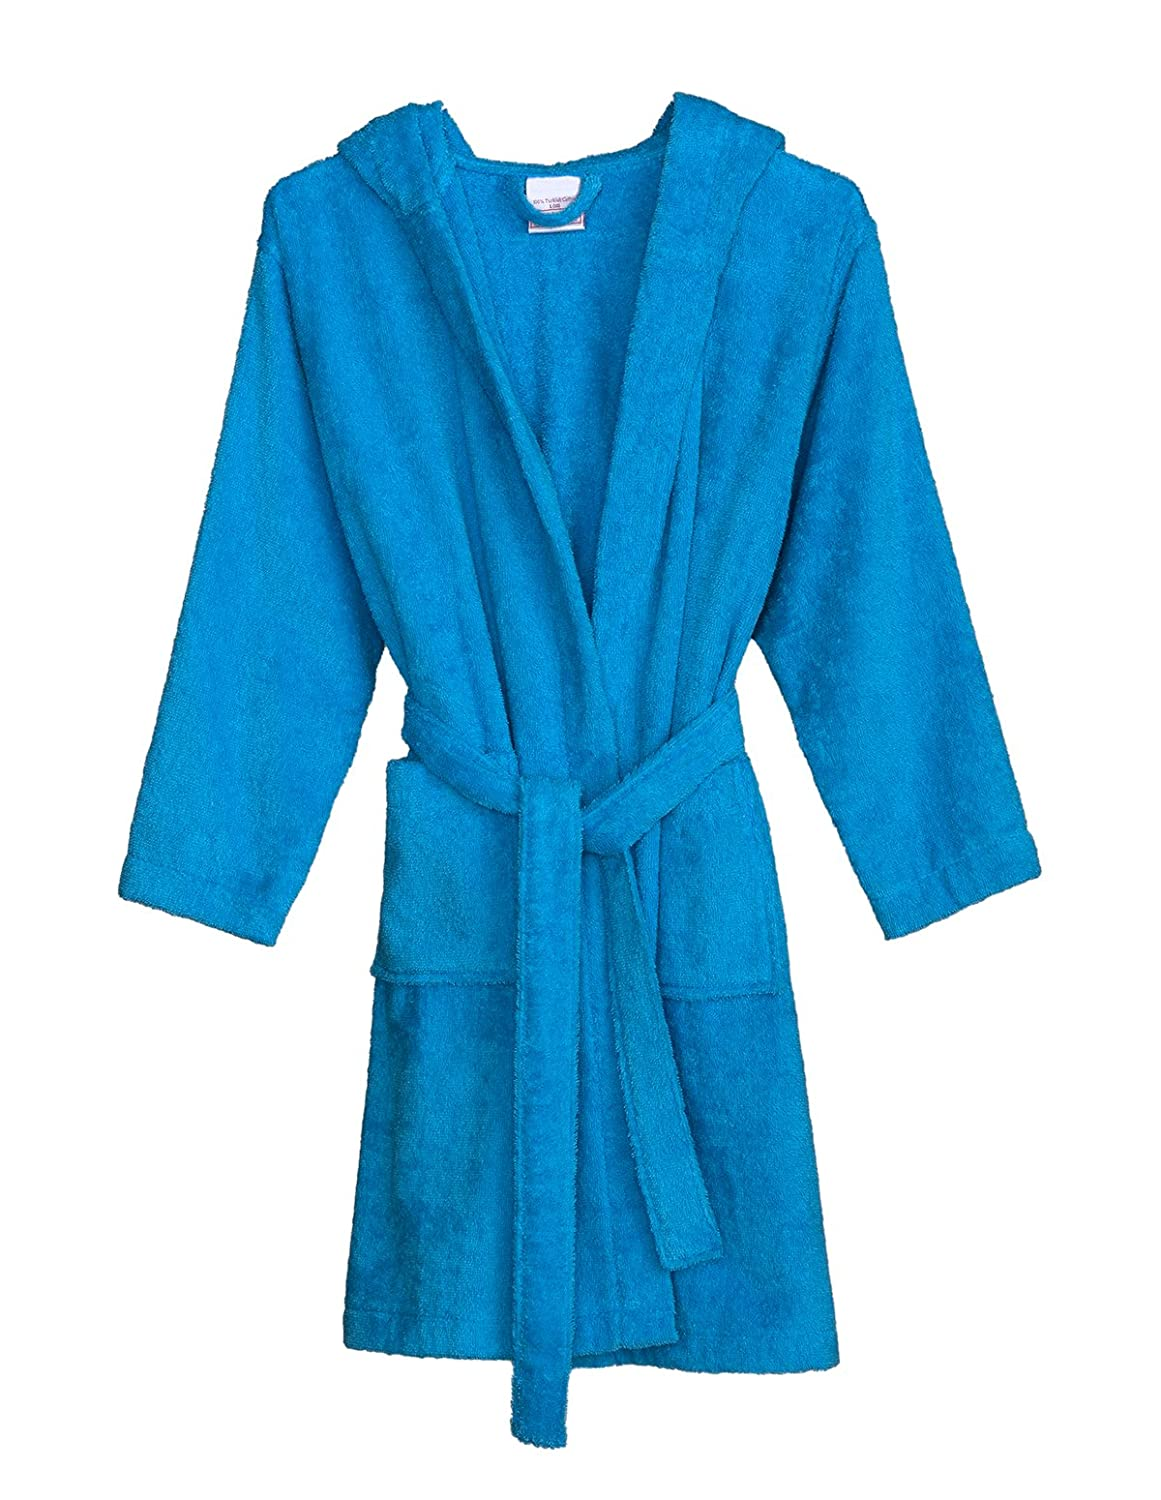 Made in Turkey TowelSelections Boys Robe Kids Hooded Cotton Terry Bathrobe